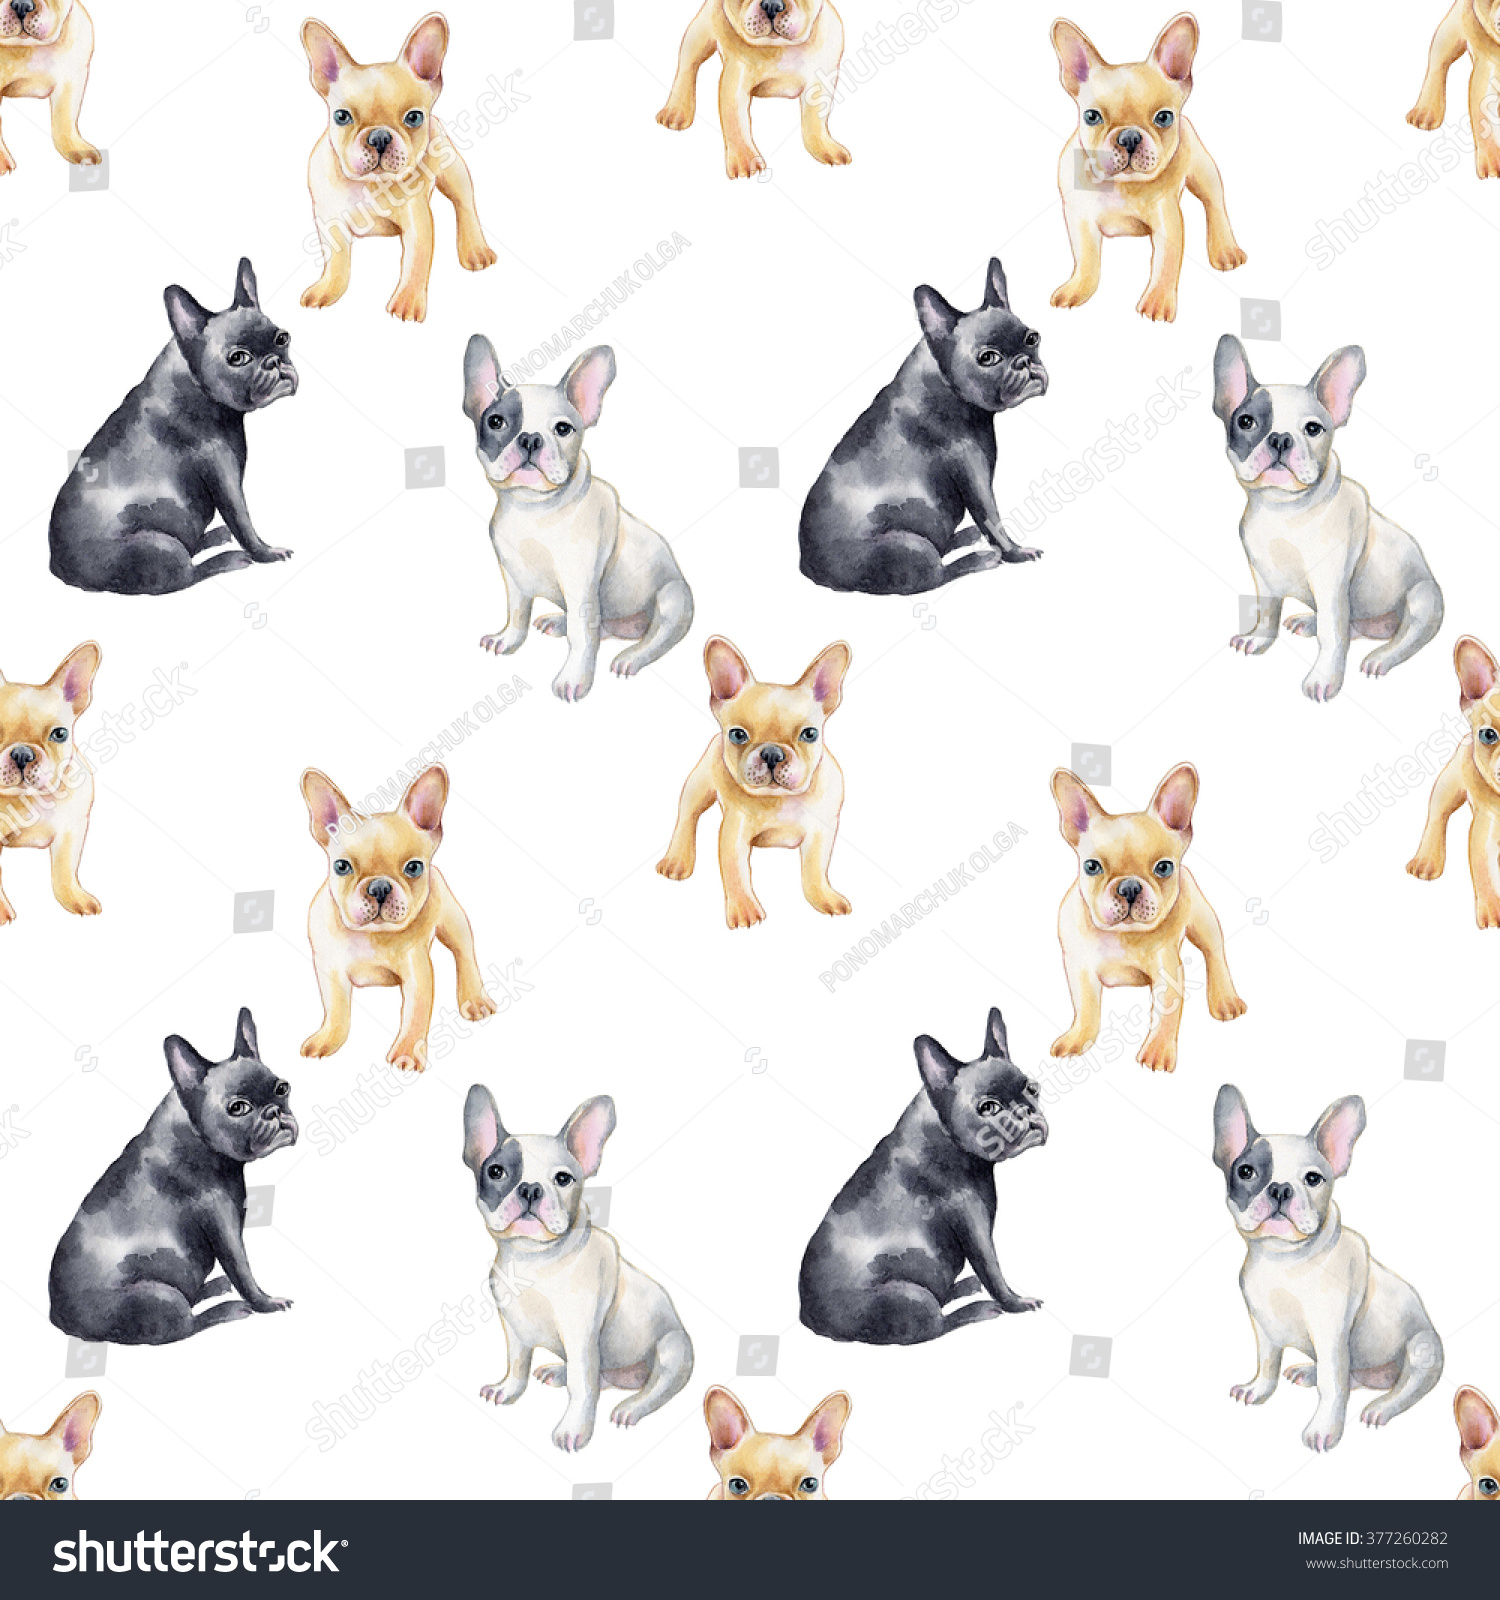 Watercolor seamless pattern of french bulldog Pet puppy background Animal wallpaper